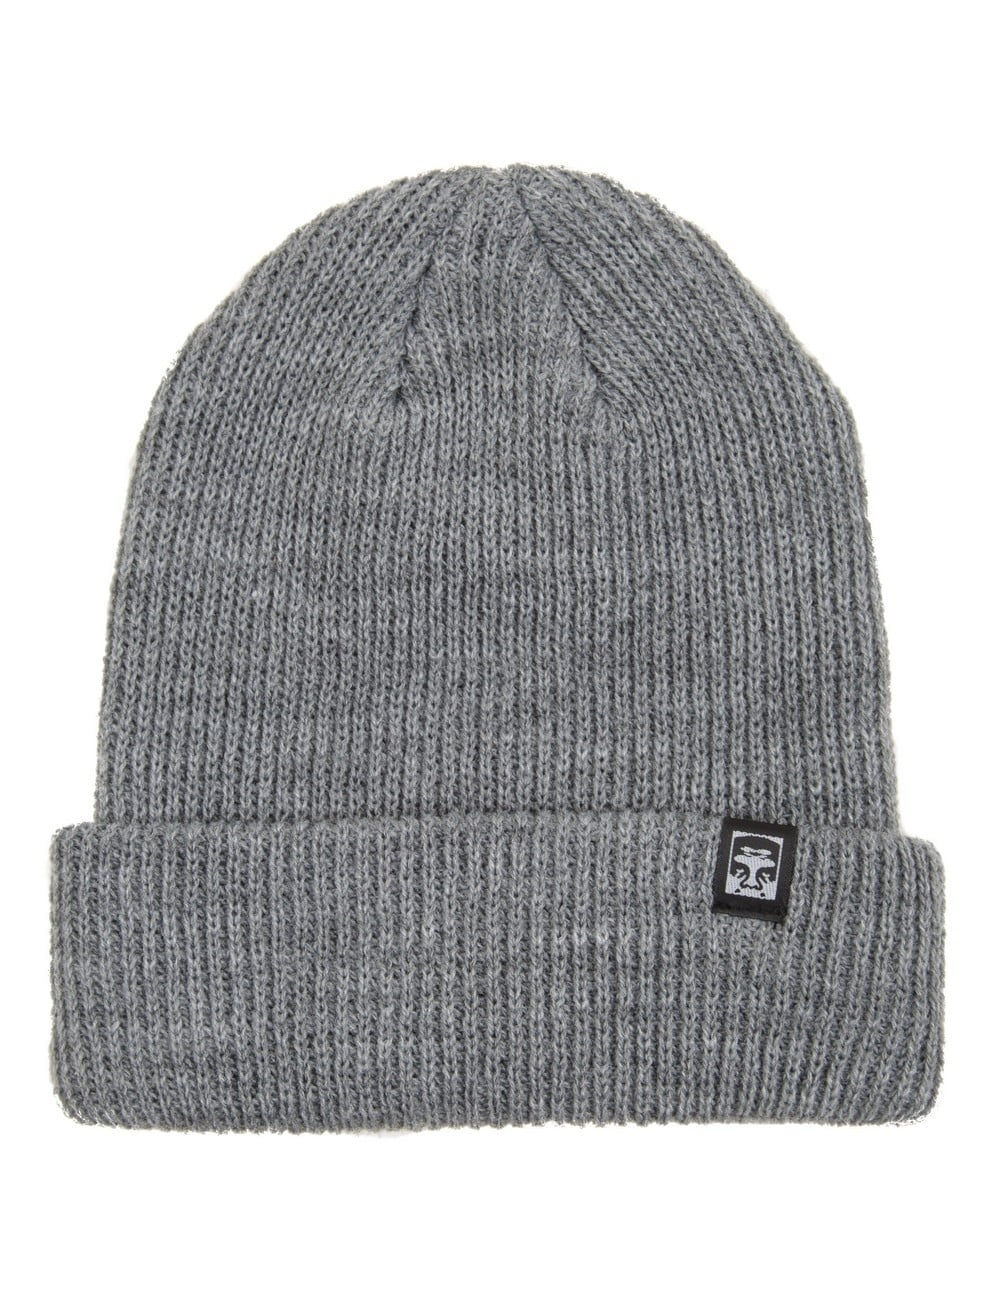 2c9d30ceb Ruger 89 Beanie Hat - Heather Grey